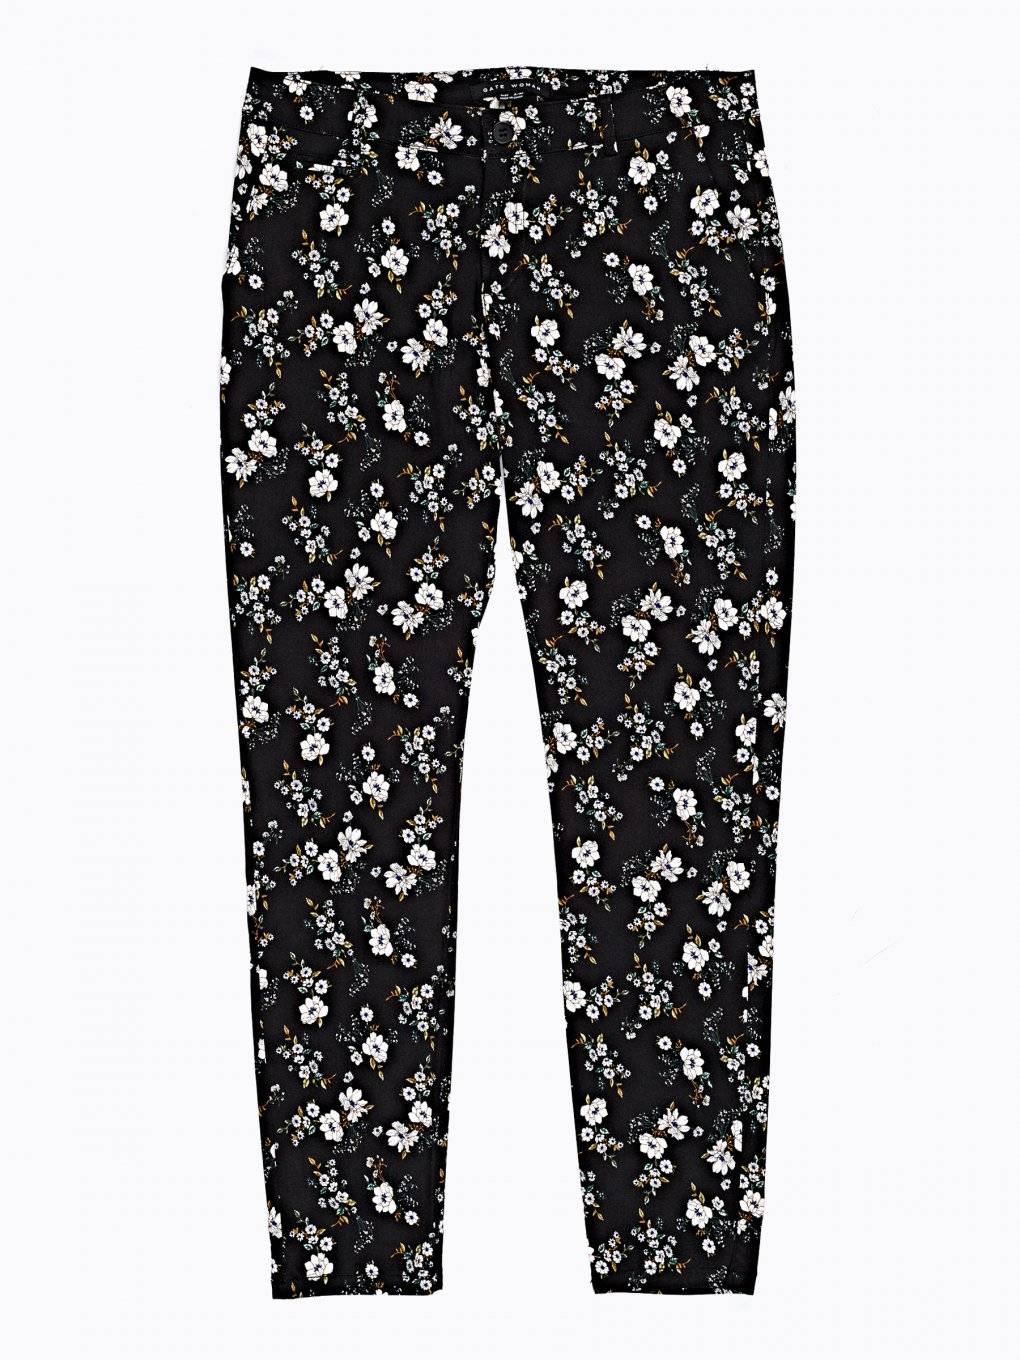 FLORAL PRINT STRETCH TROUSERS